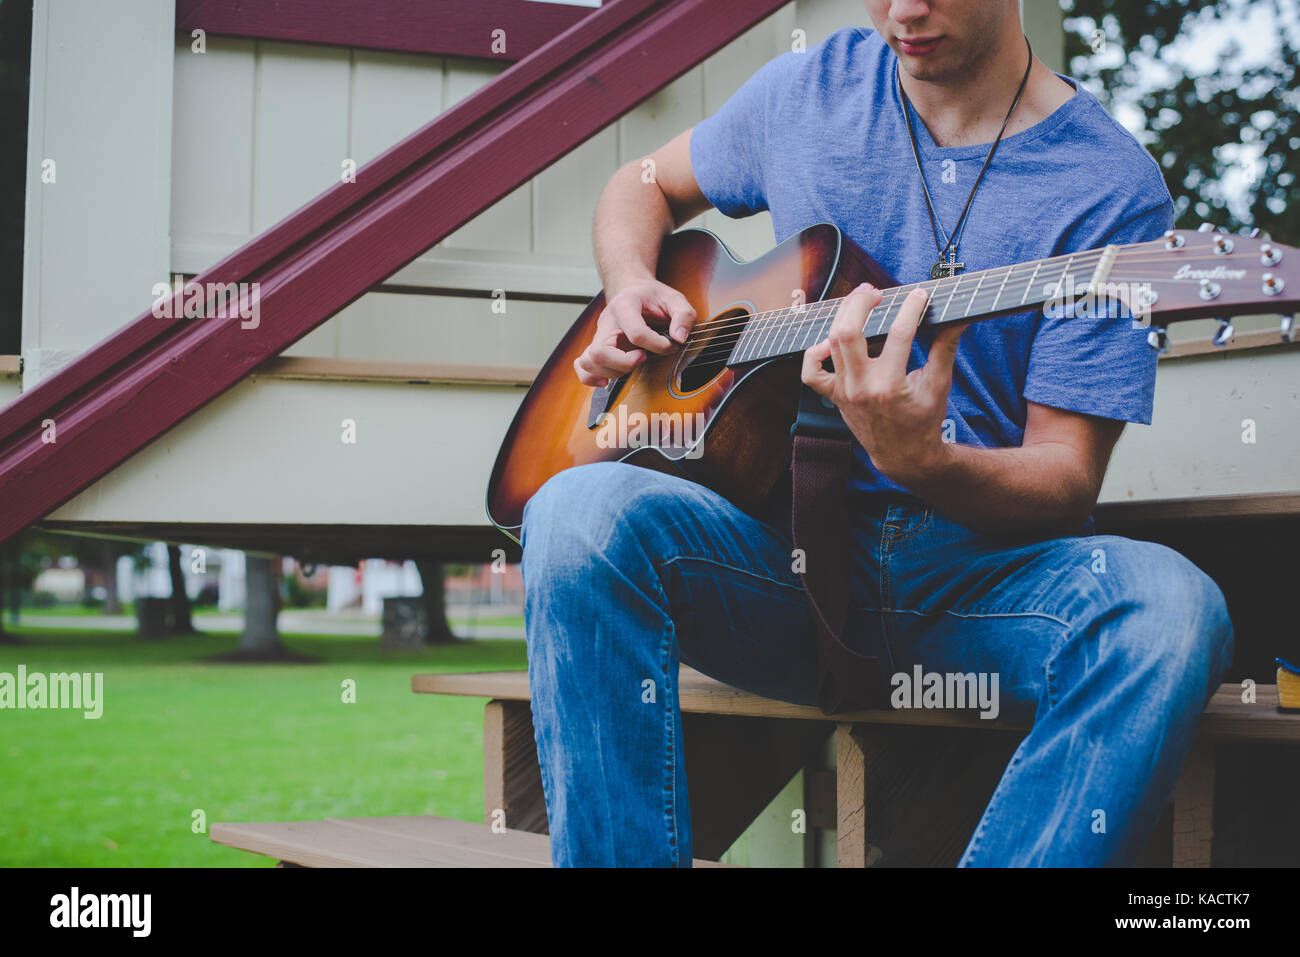 A young man plays a guitar. - Stock Image